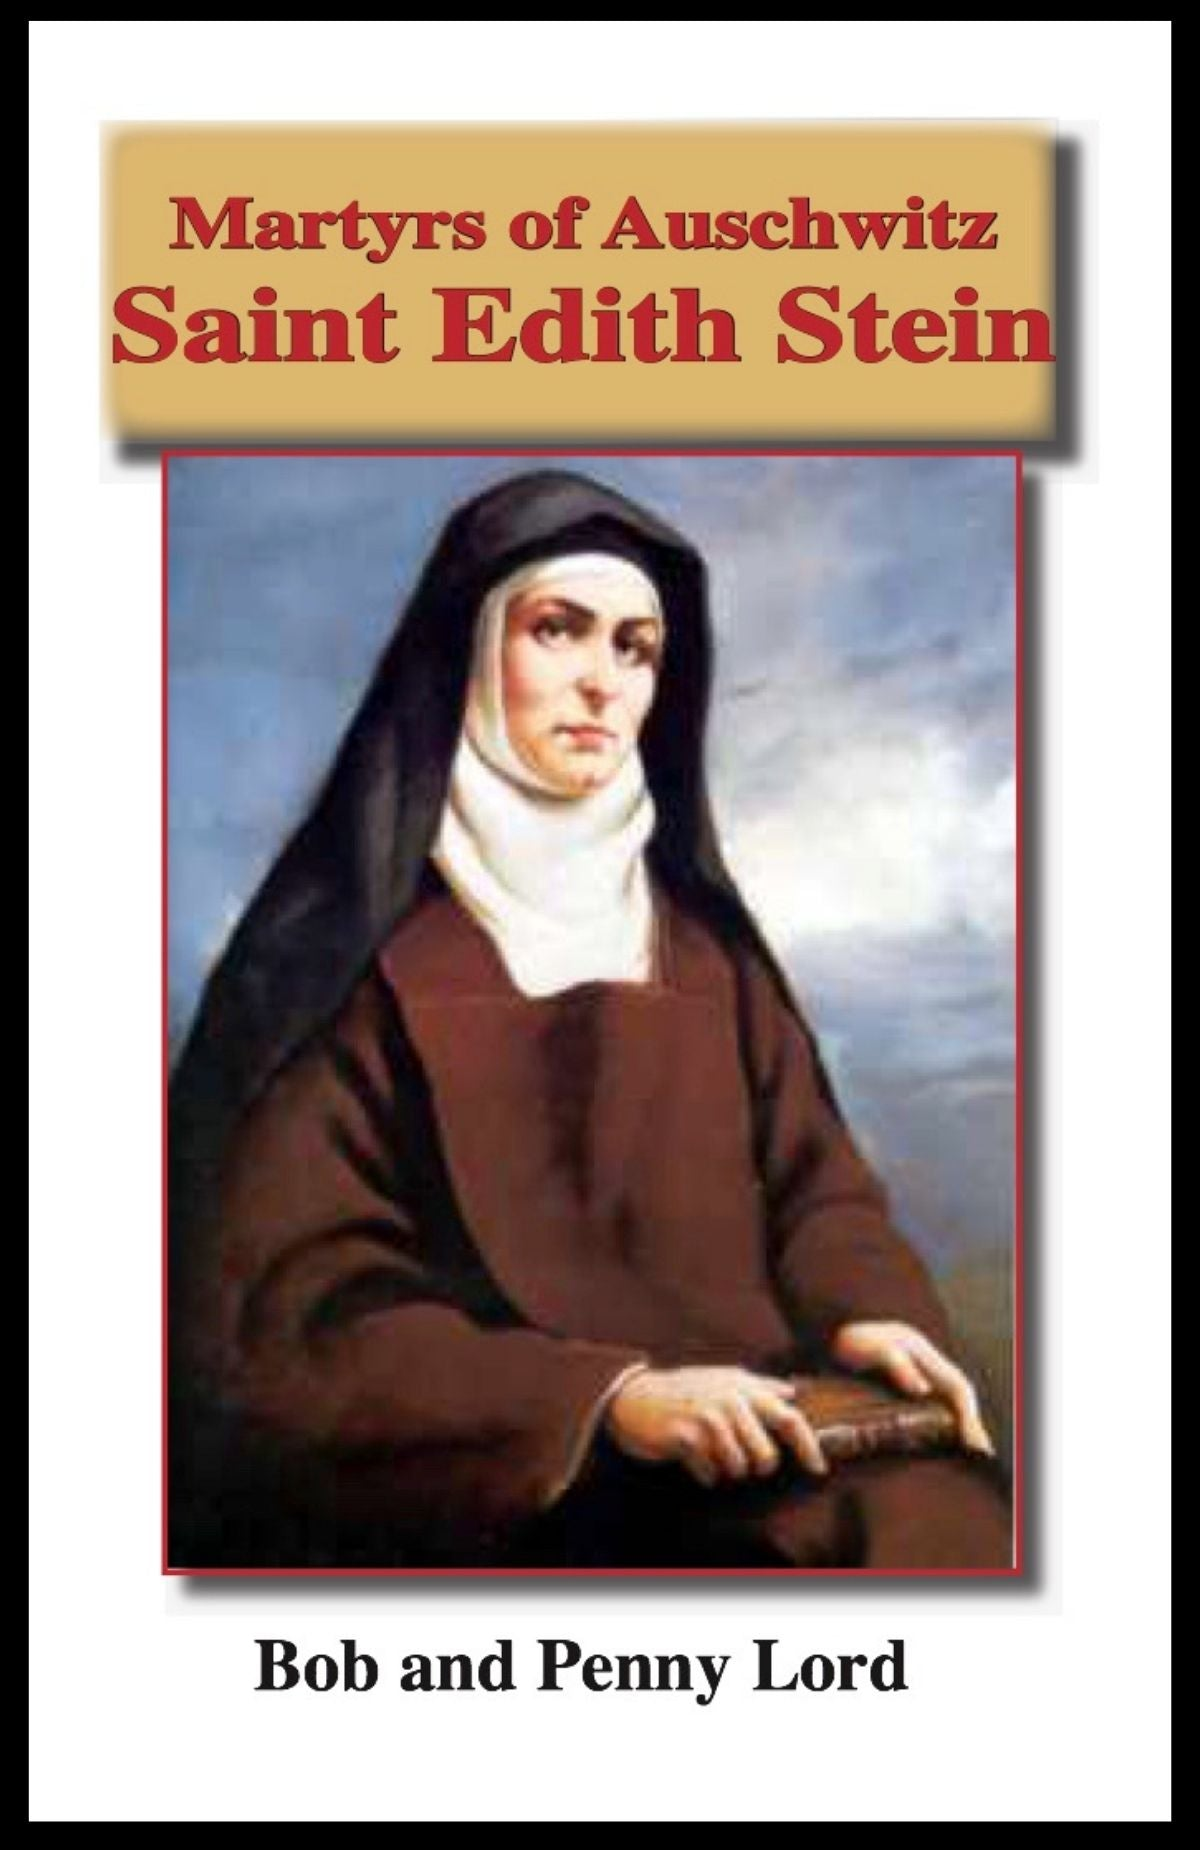 Saint Edith Stein  Minibook - Bob and Penny Lord